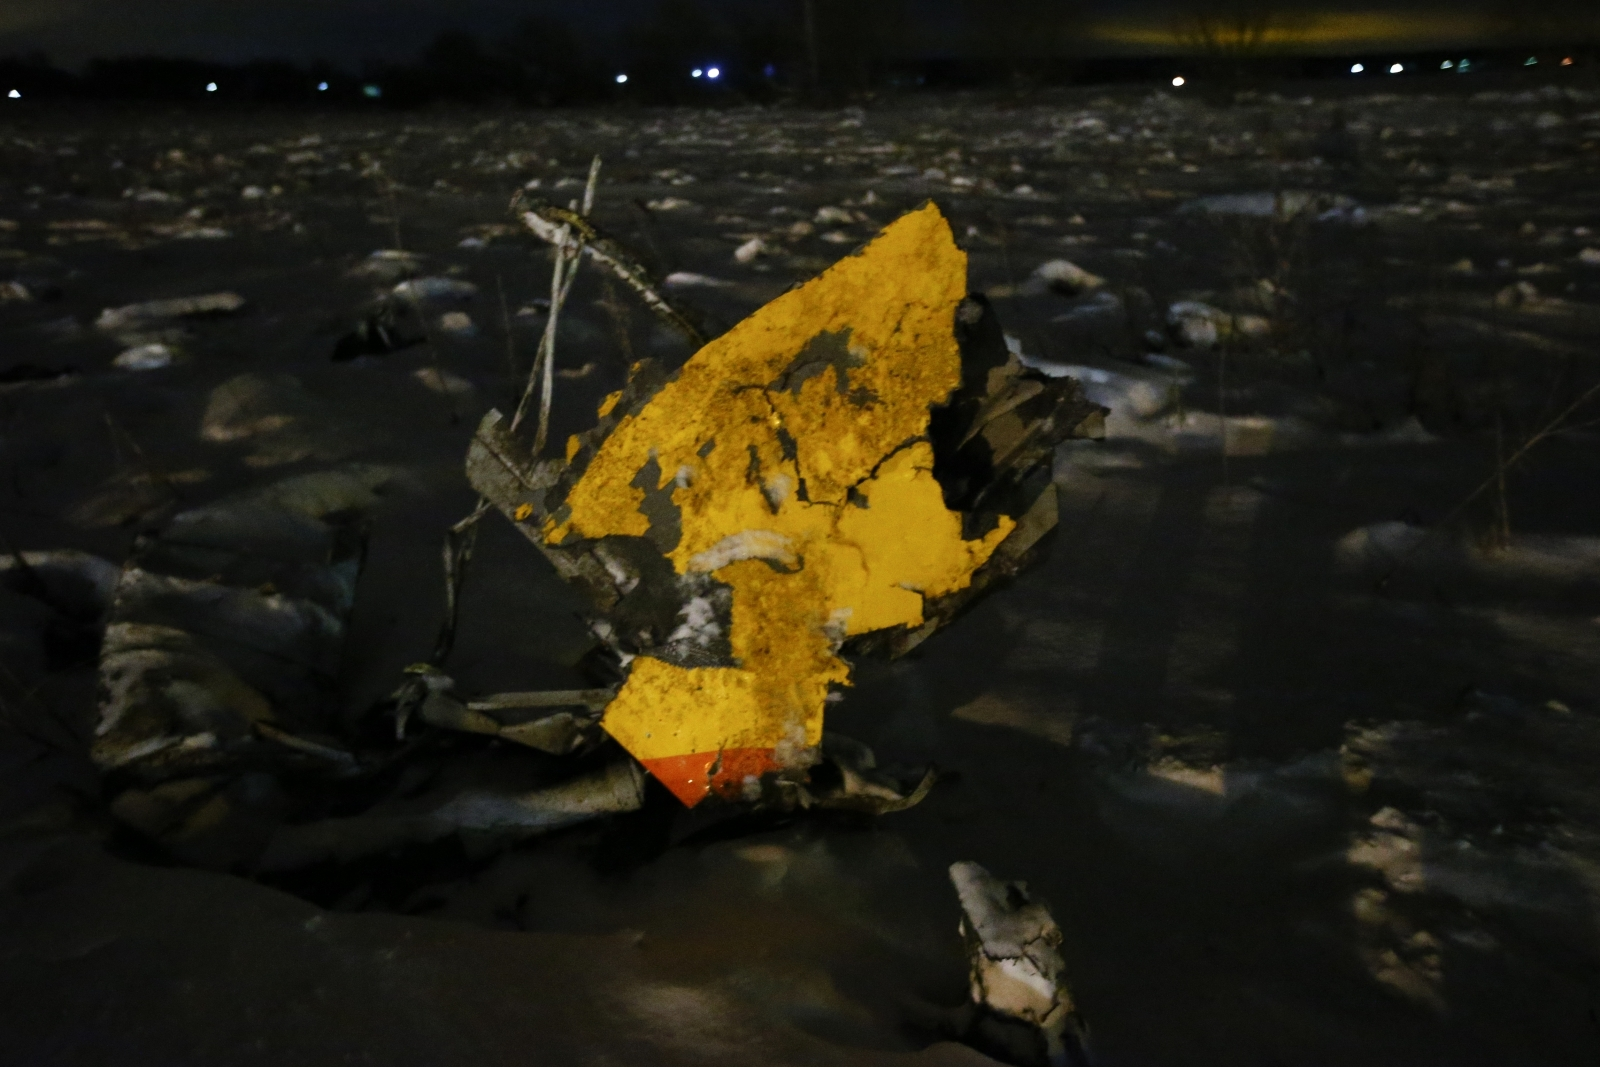 71 dead, no survivors in Russian plane crash